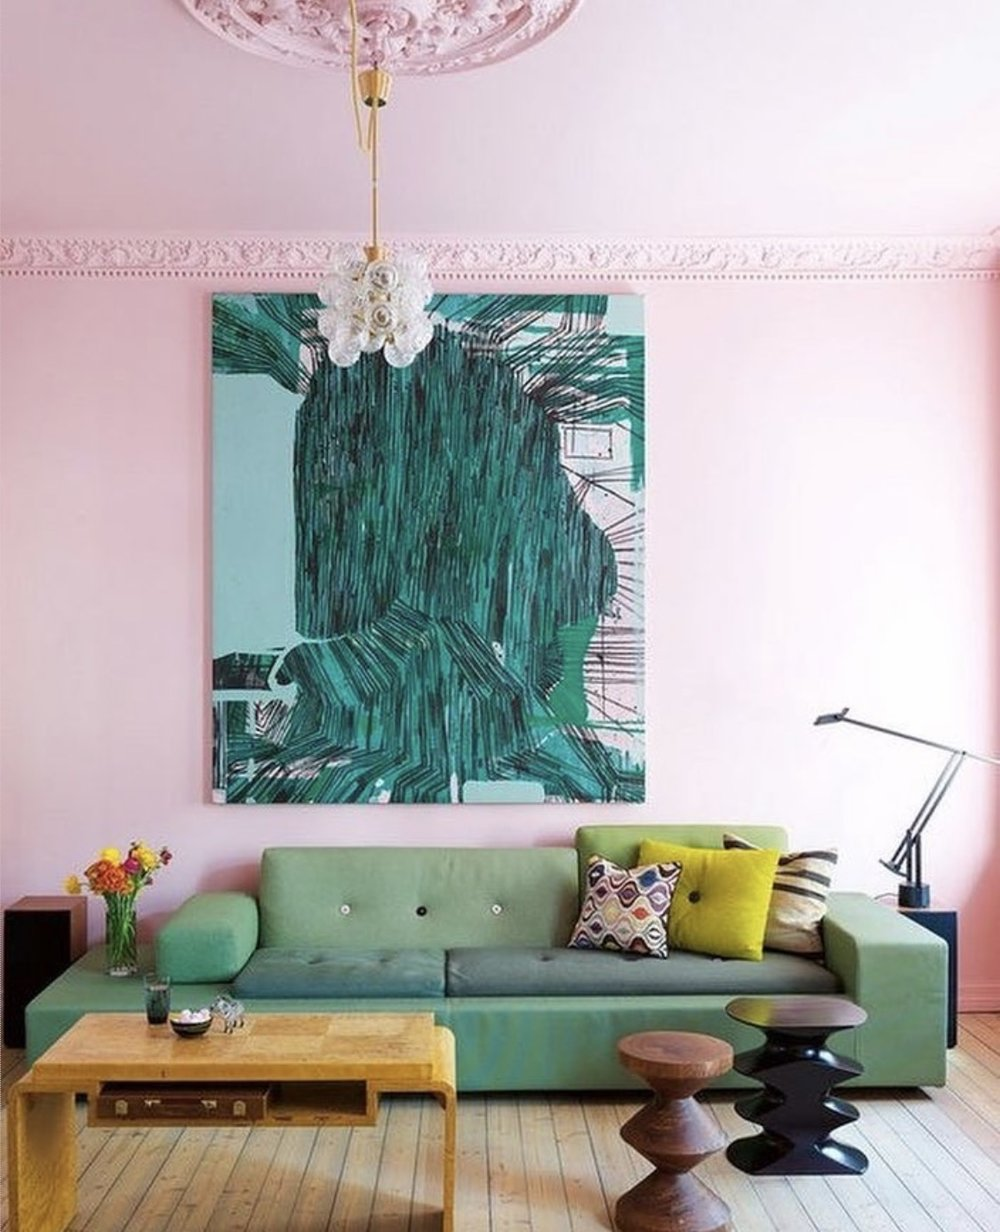 Pink room inspo.  Photography by Erin Williamson.